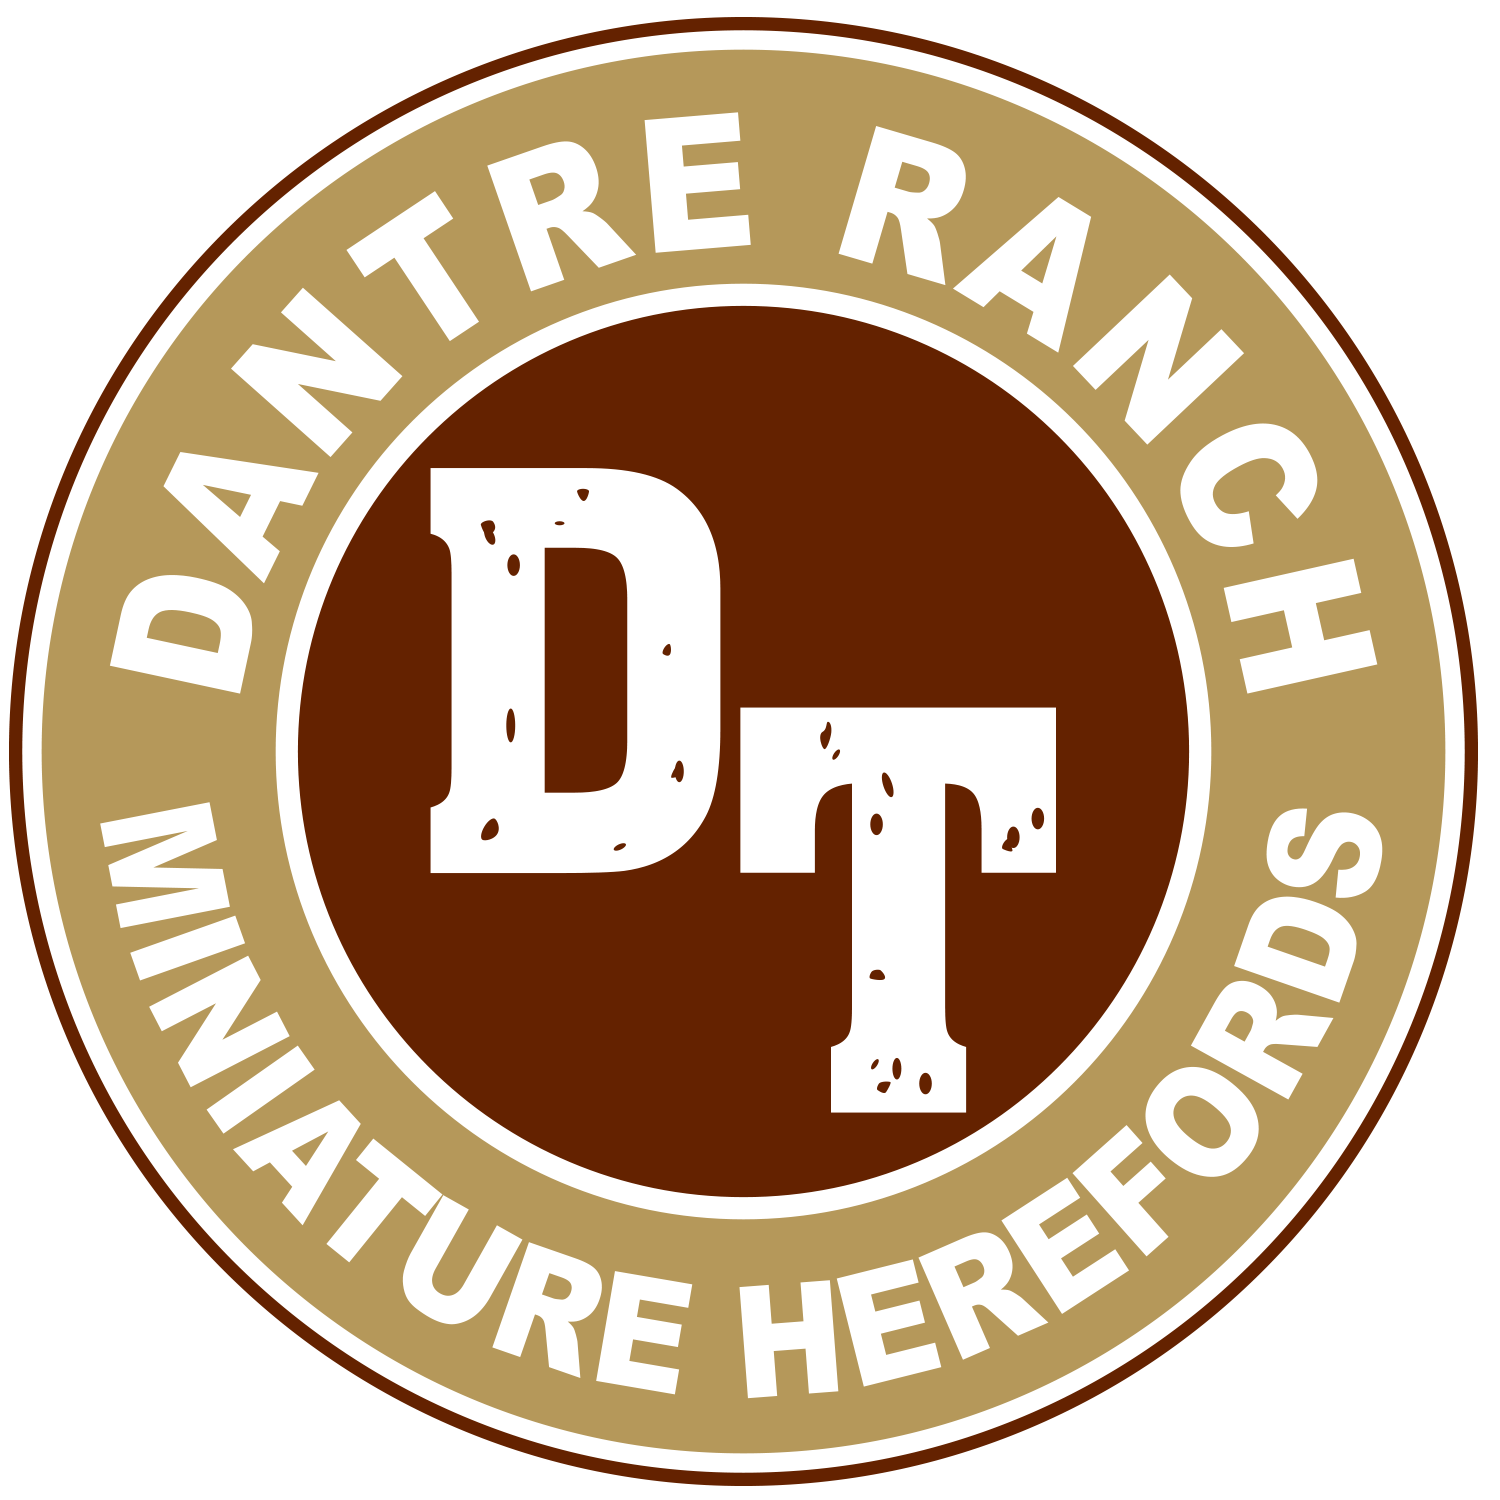 Dantre Ranch